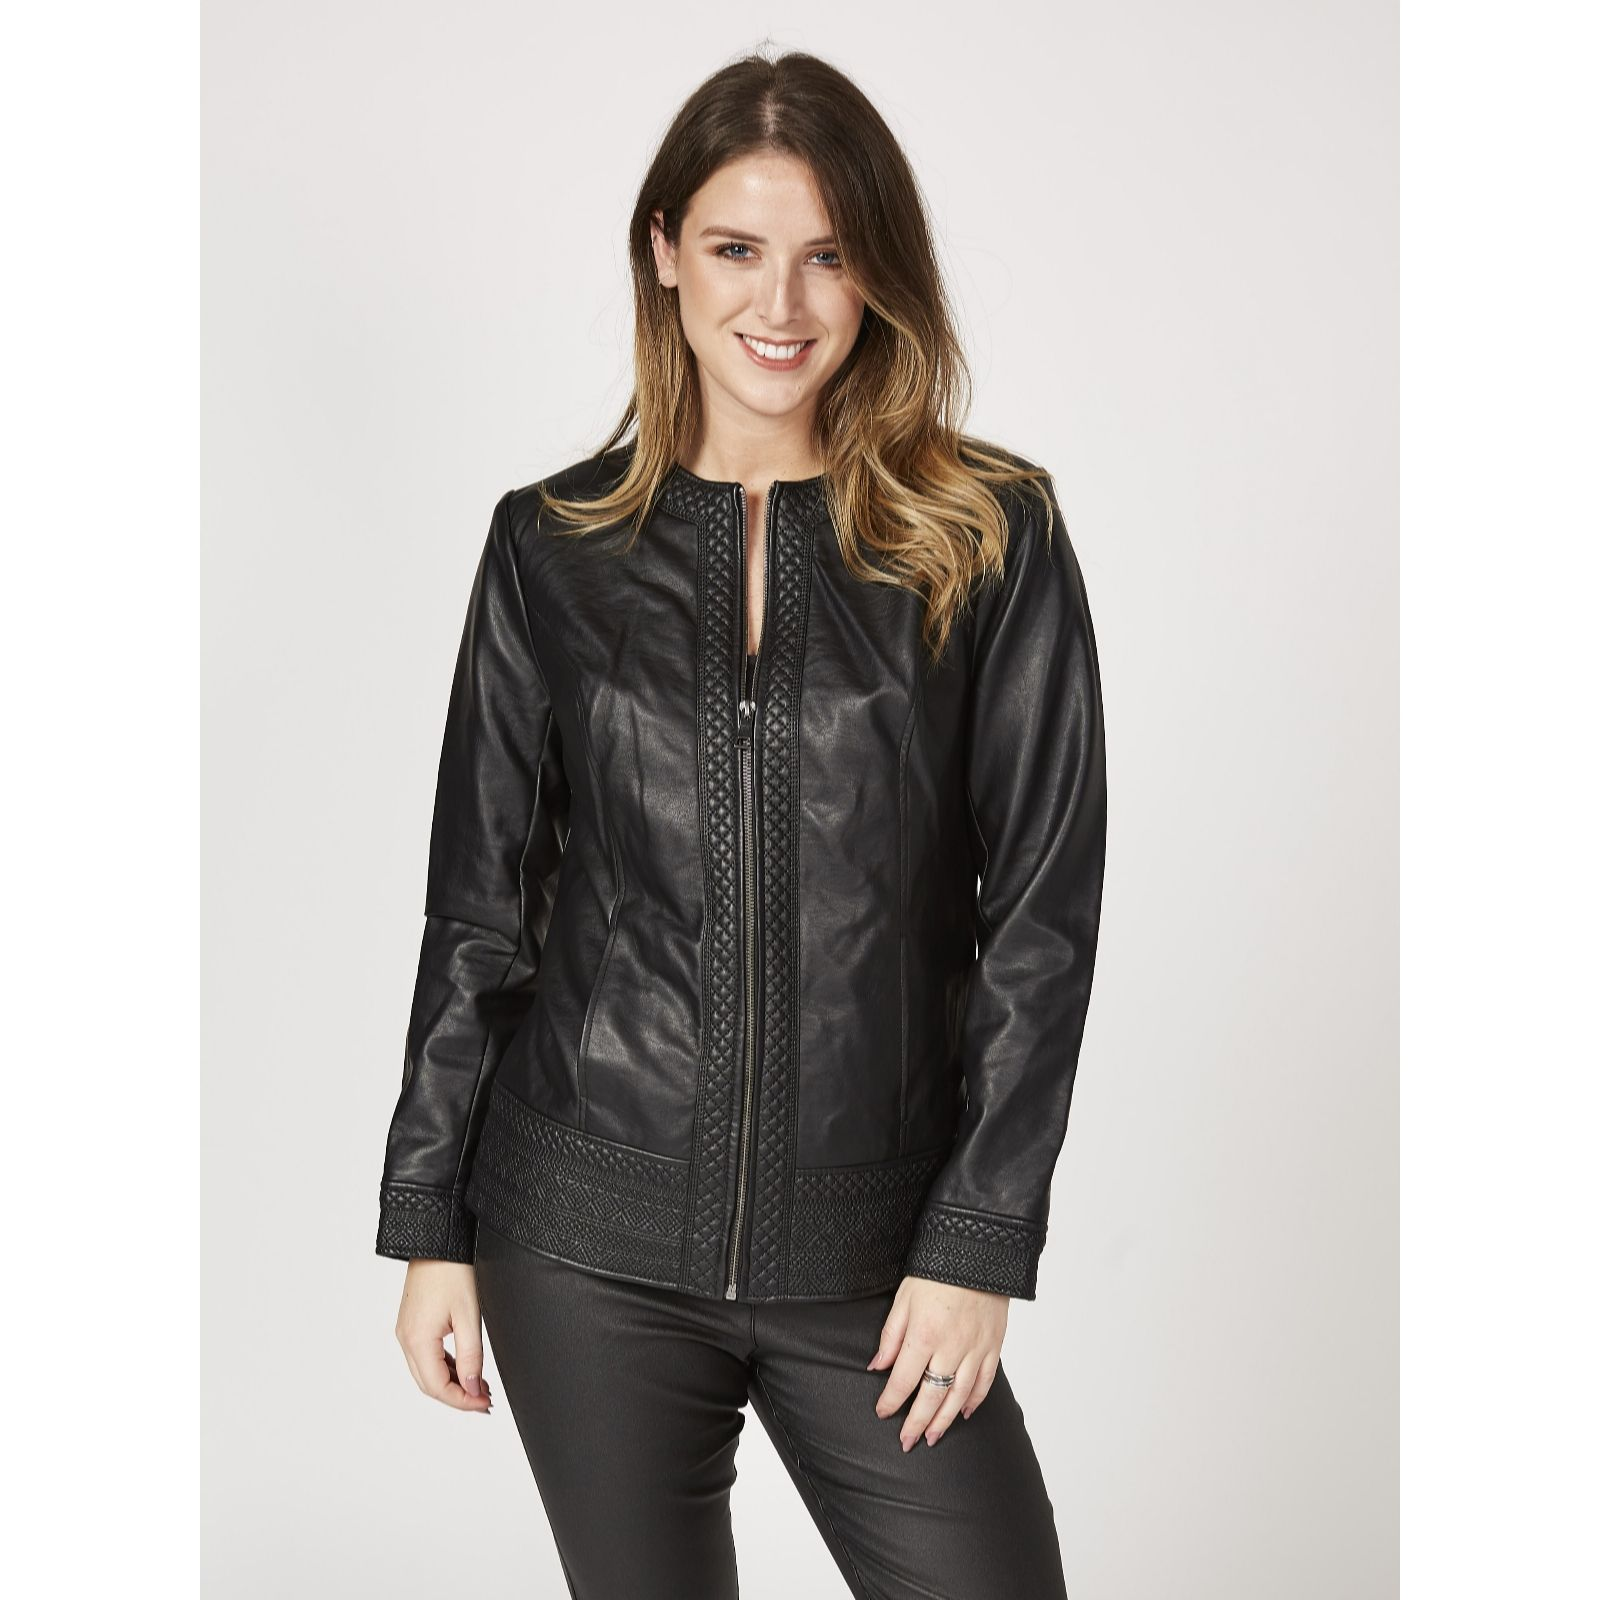 d5f3729a11980 Denim   Co. Faux Leather Jacket with Embroidery Trim - QVC UK